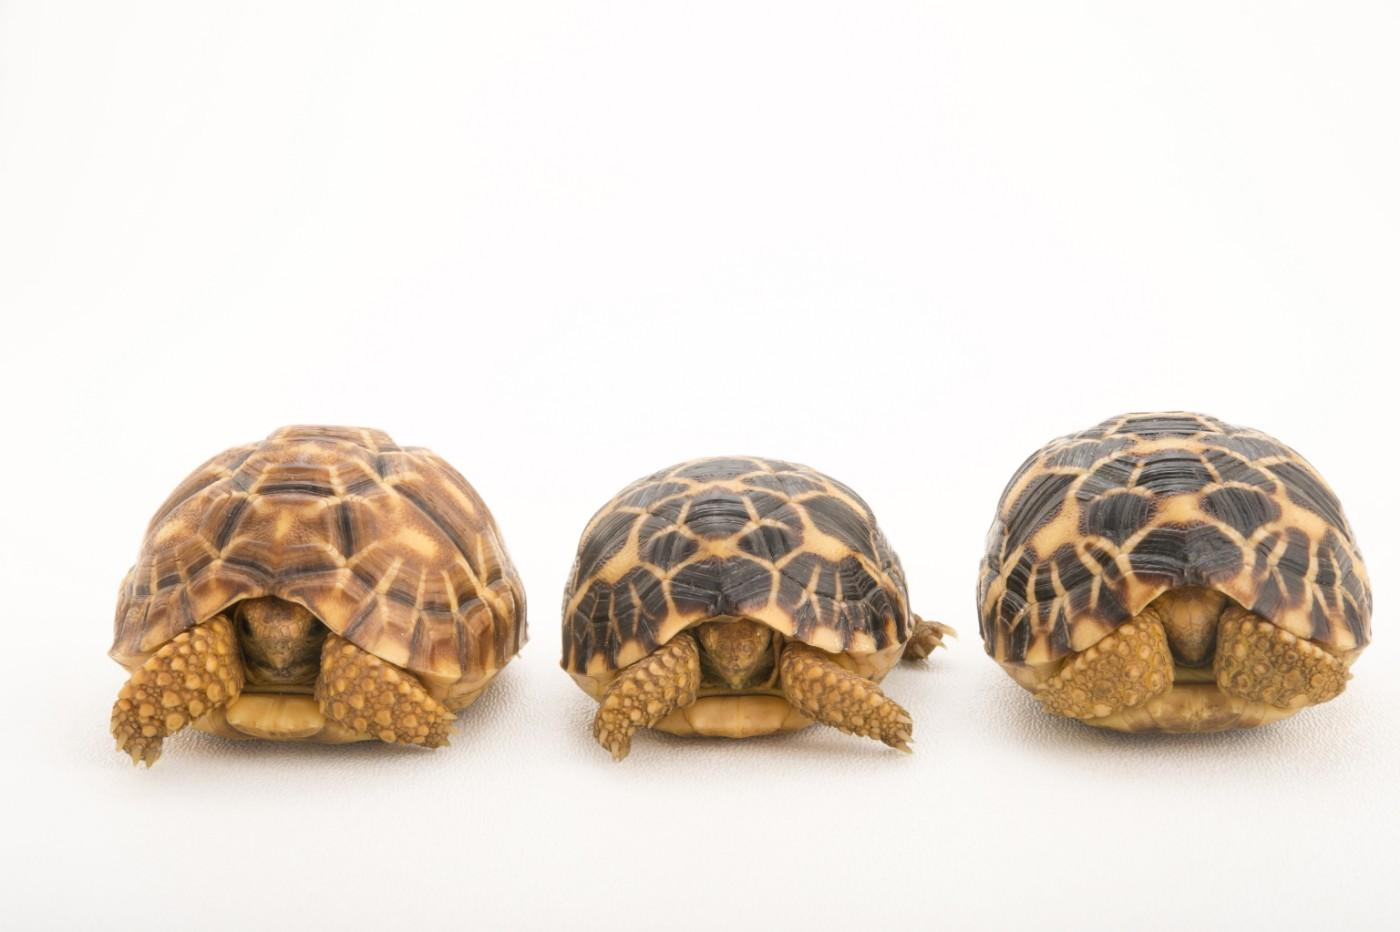 Three critically endangered, yearling Burmese star tortoises, Geochelone platynota, at the Turtle Conservancy.